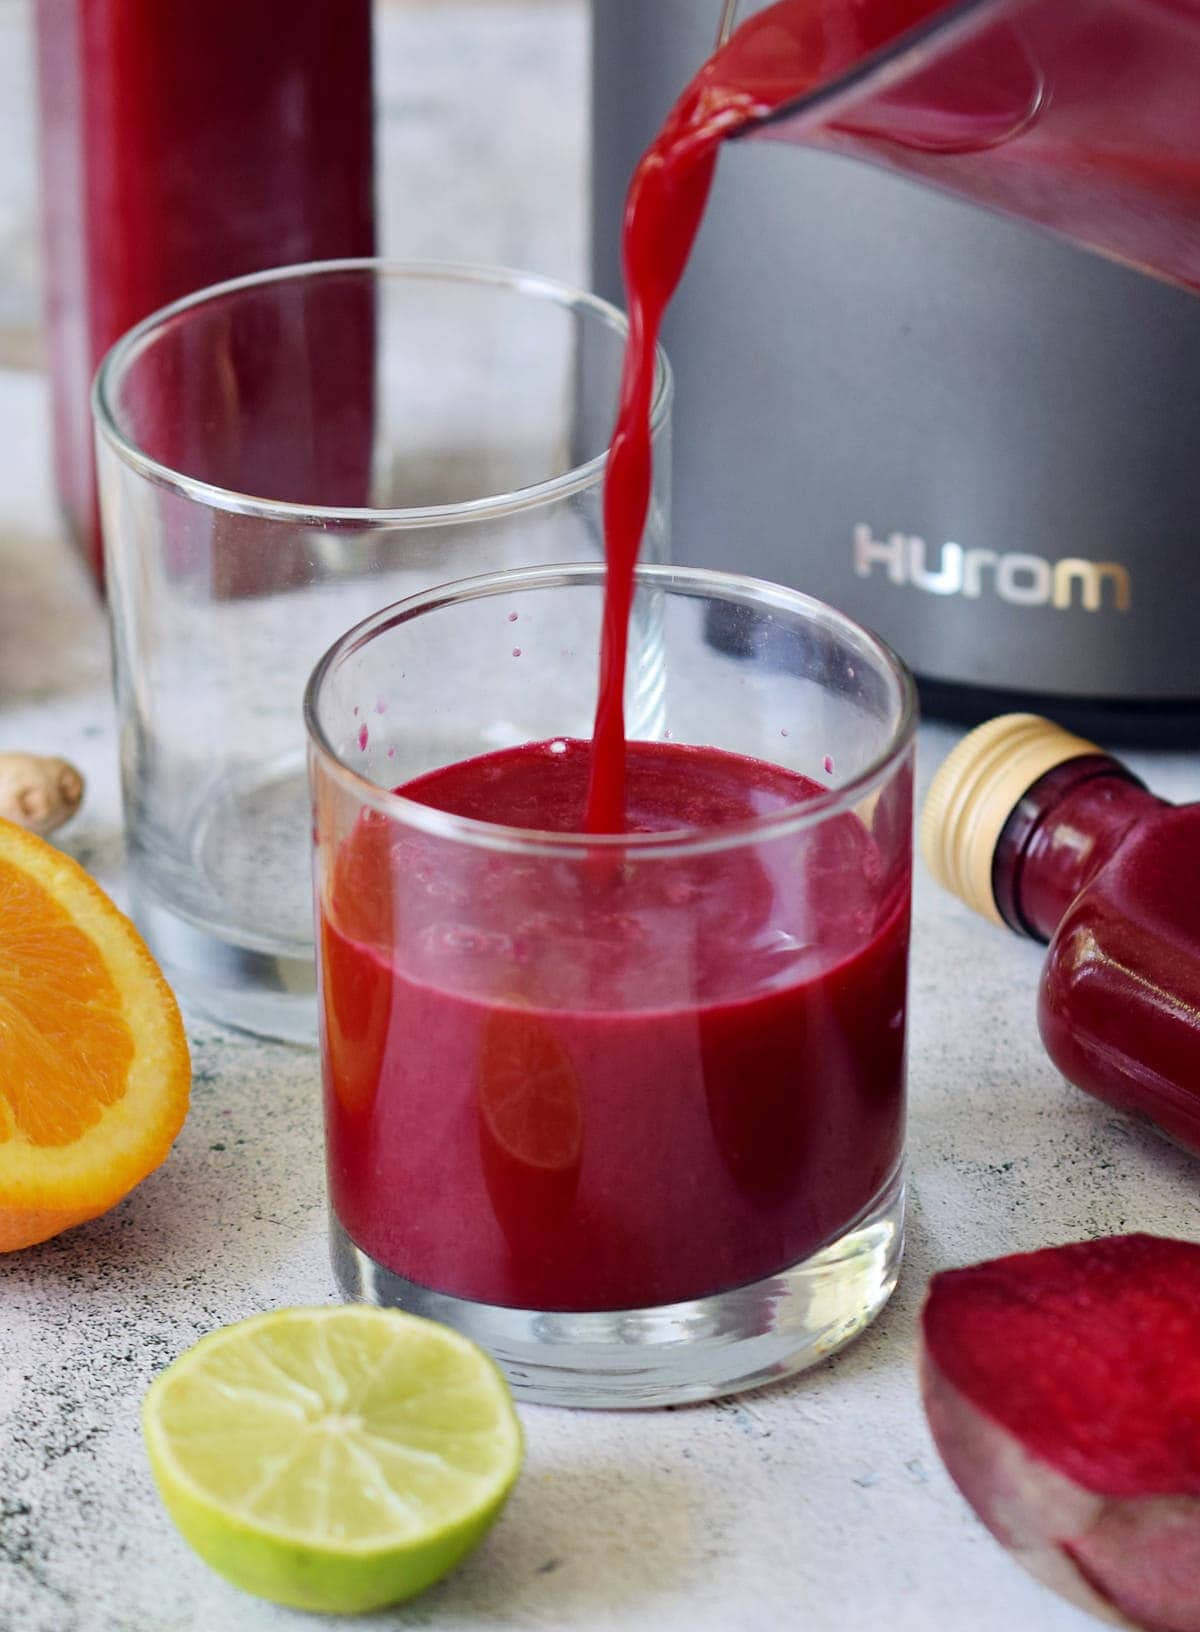 pouring beetroot juice into glass in front of Hurom juicer